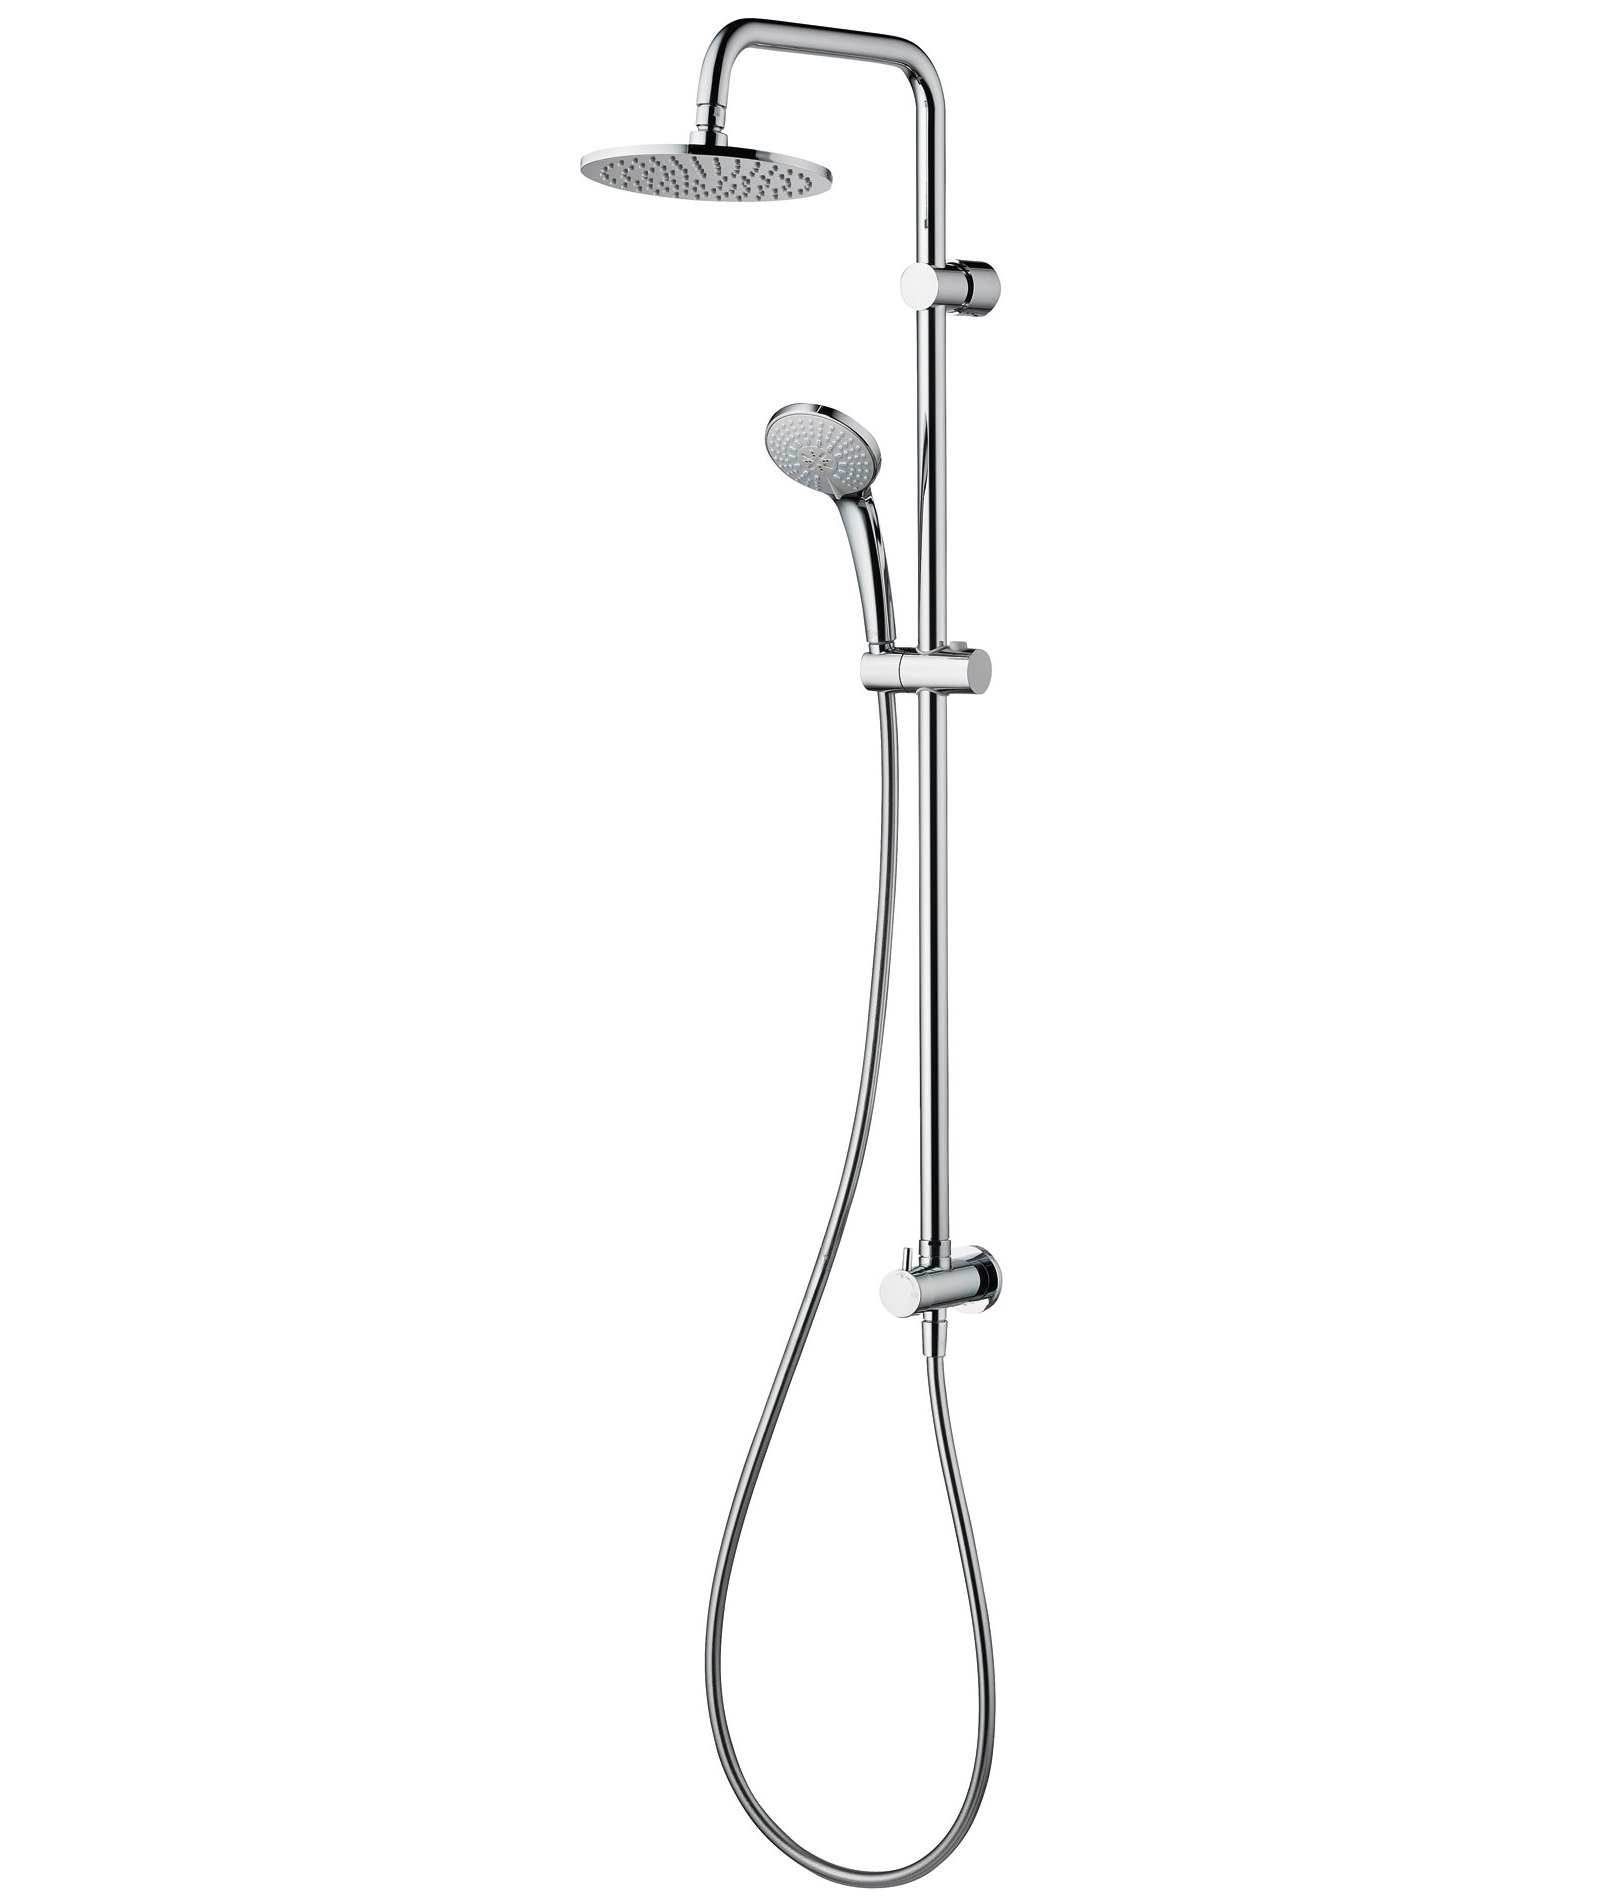 ideal standard idealrain dual shower kit for built in shower mixers a5689aa. Black Bedroom Furniture Sets. Home Design Ideas